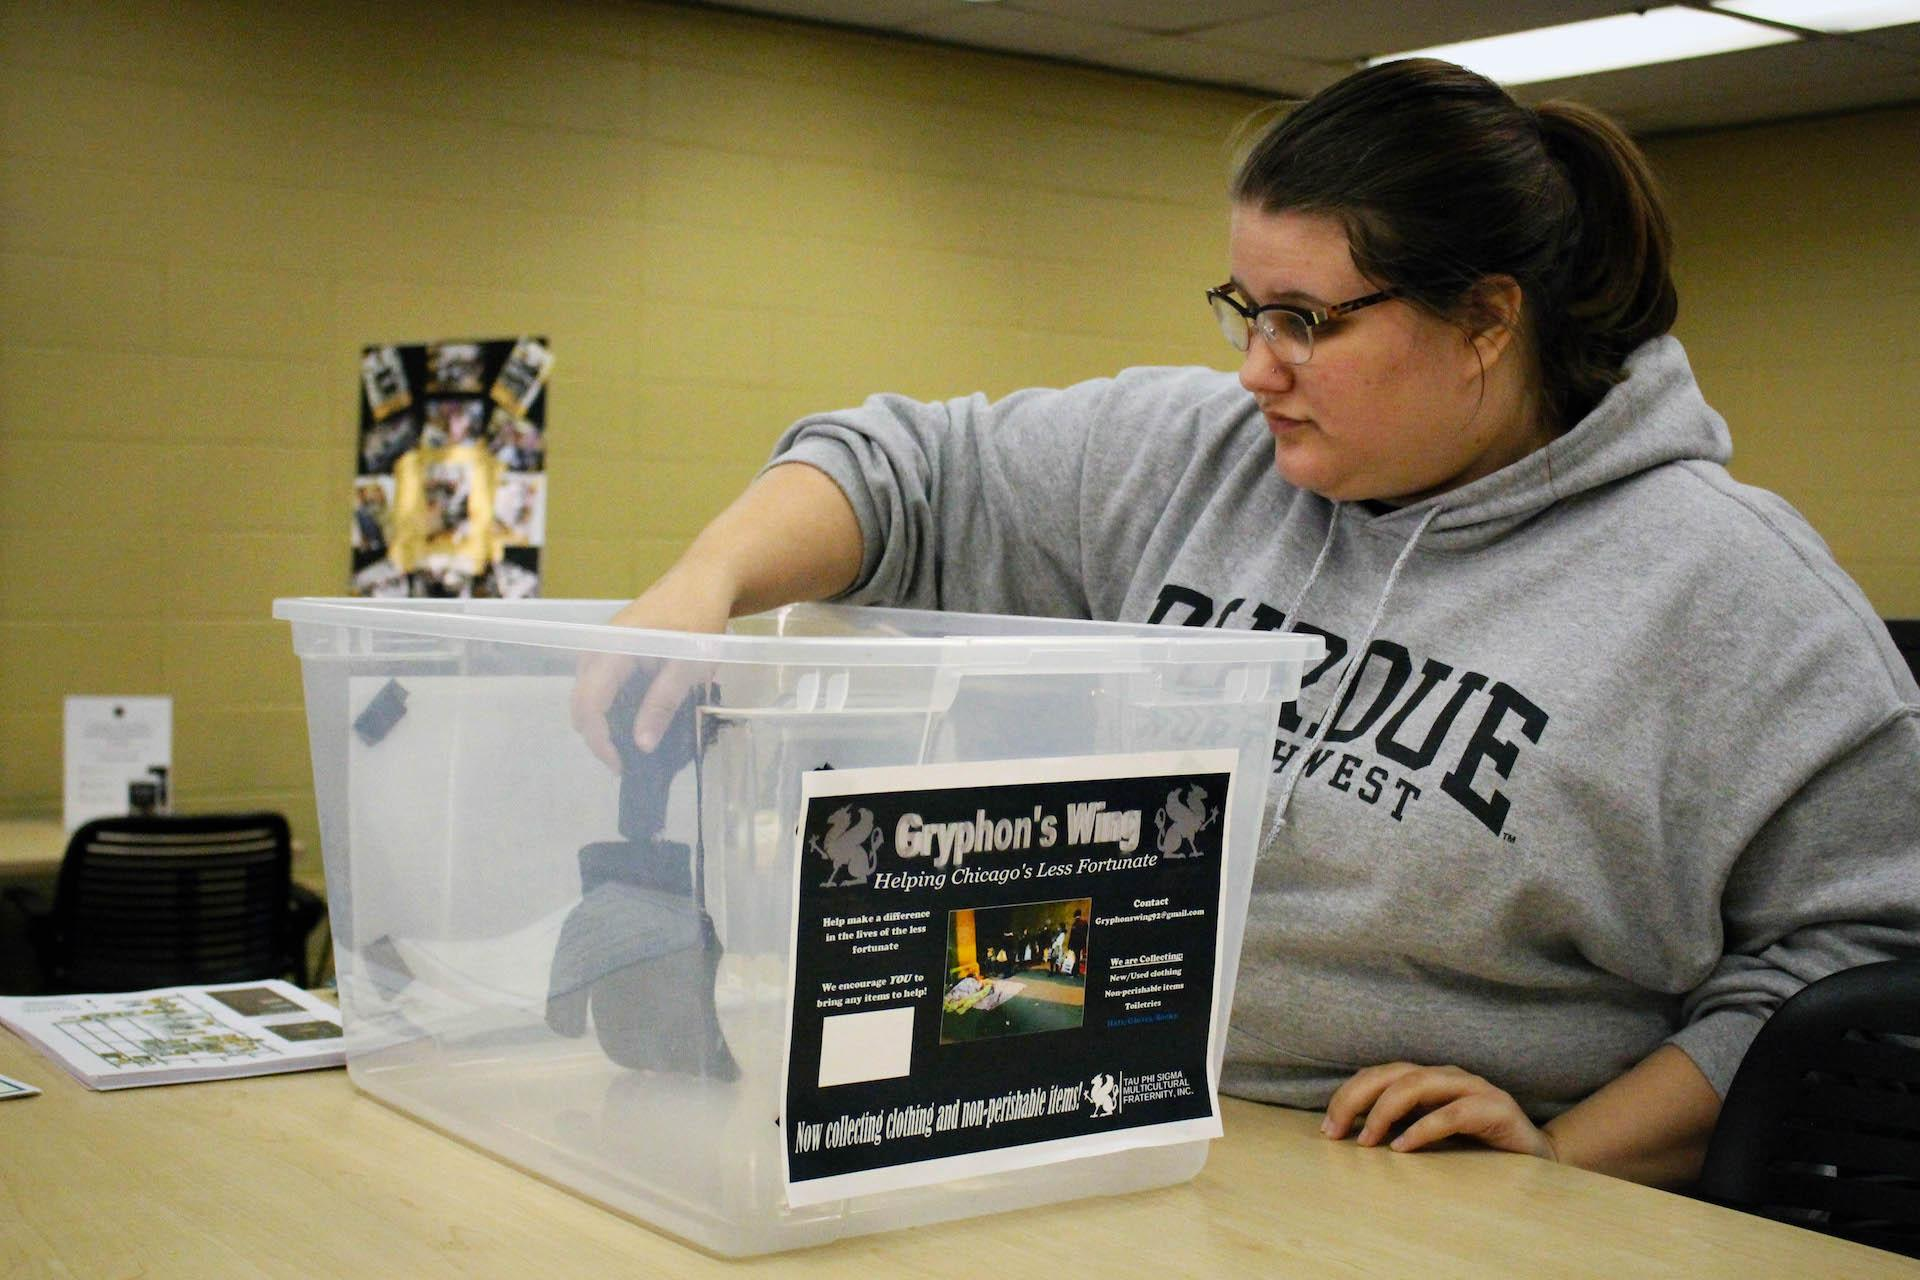 Kathryn Baum, junior communications major, places an item in the donation bin.